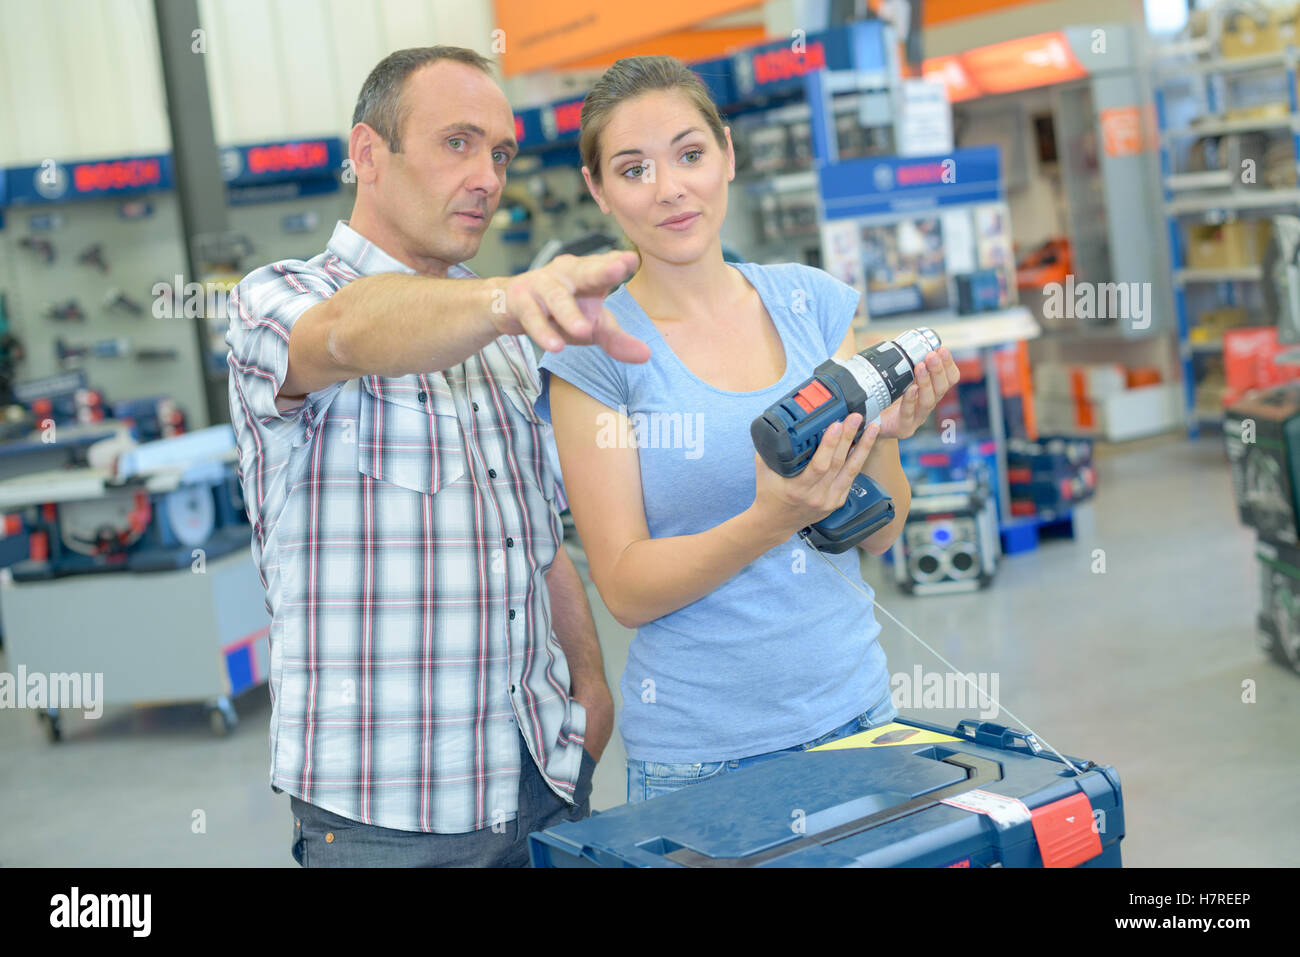 Couple in hardware shop, man pointing - Stock Image